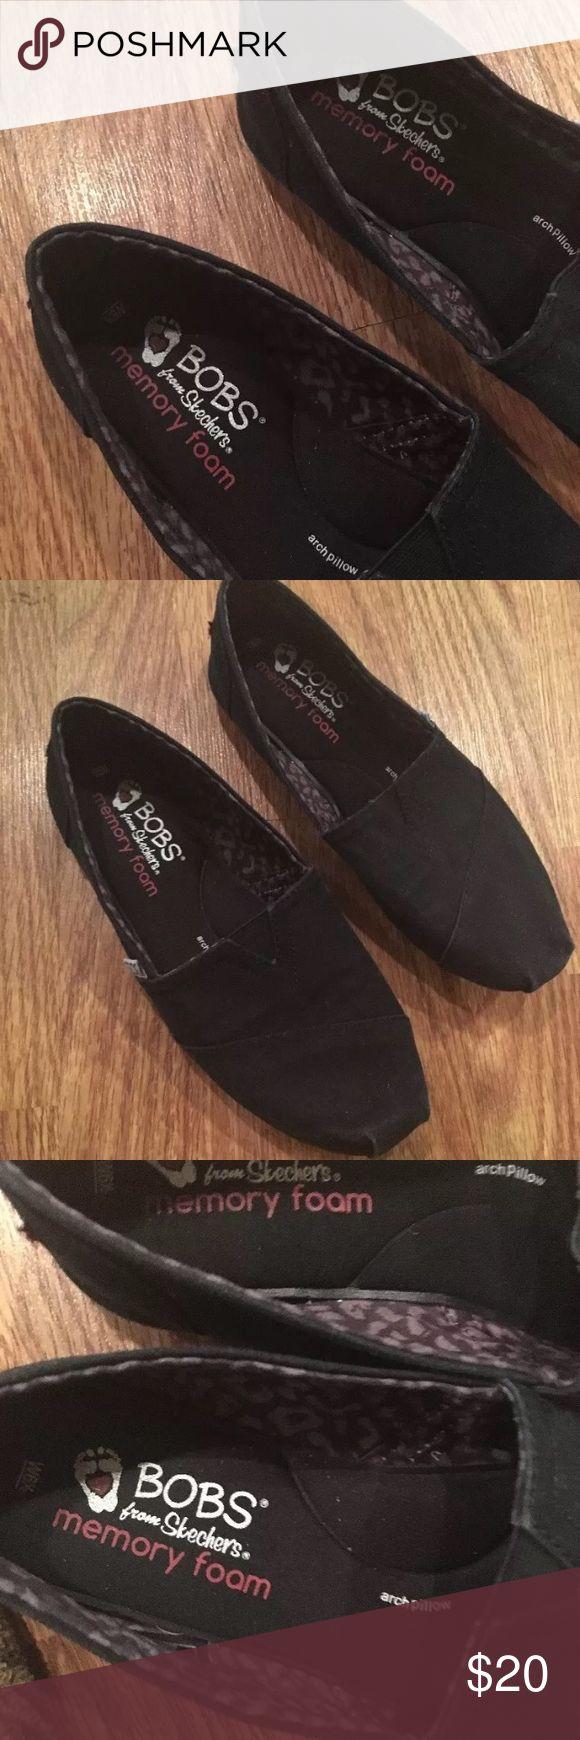 Bobs Skechers black memory foam Slip On Shoes 6.5 Bobs by Skechers. Memory foam Slip one. Worn a handful of times, bottoms show minor wear. Cleaned and ready to wear size 6.5 bobs Shoes Flats & Loafers